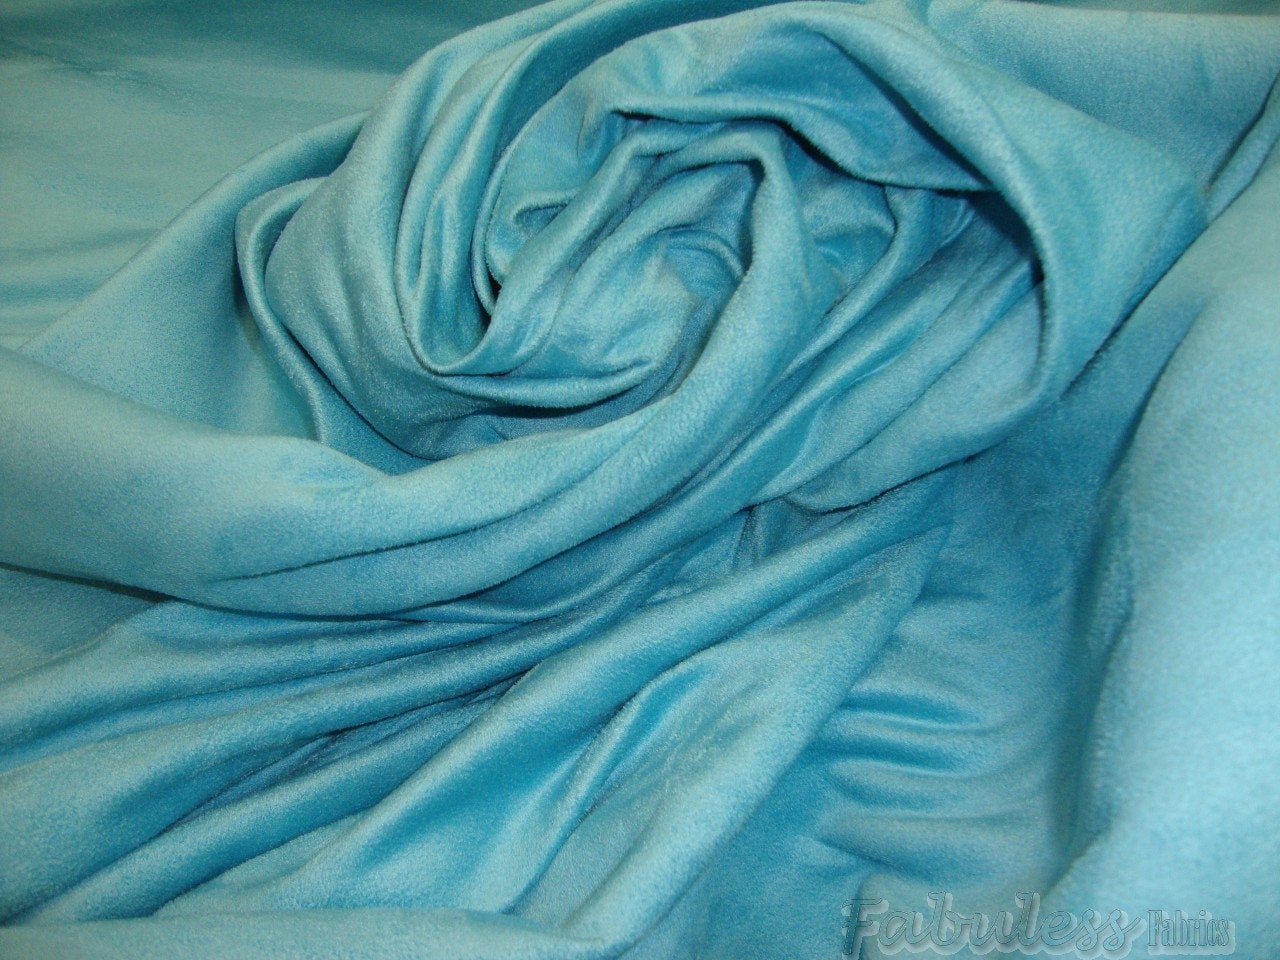 aqua-micro-faux-suede-upholstery-fabric-58-inches-wide-by-the-yard